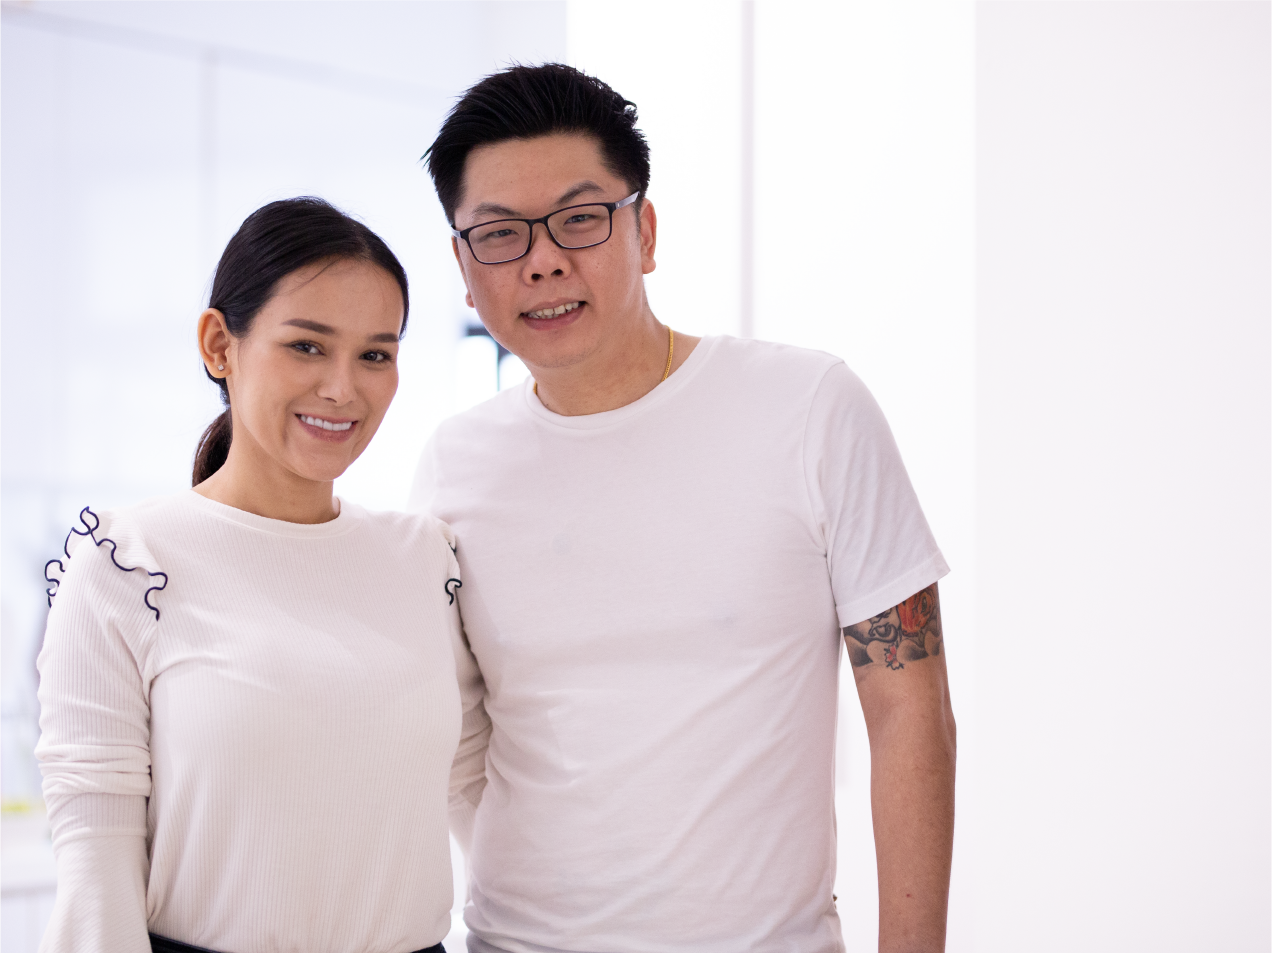 Derrick and Patricia met at Thailand PG Home Stories